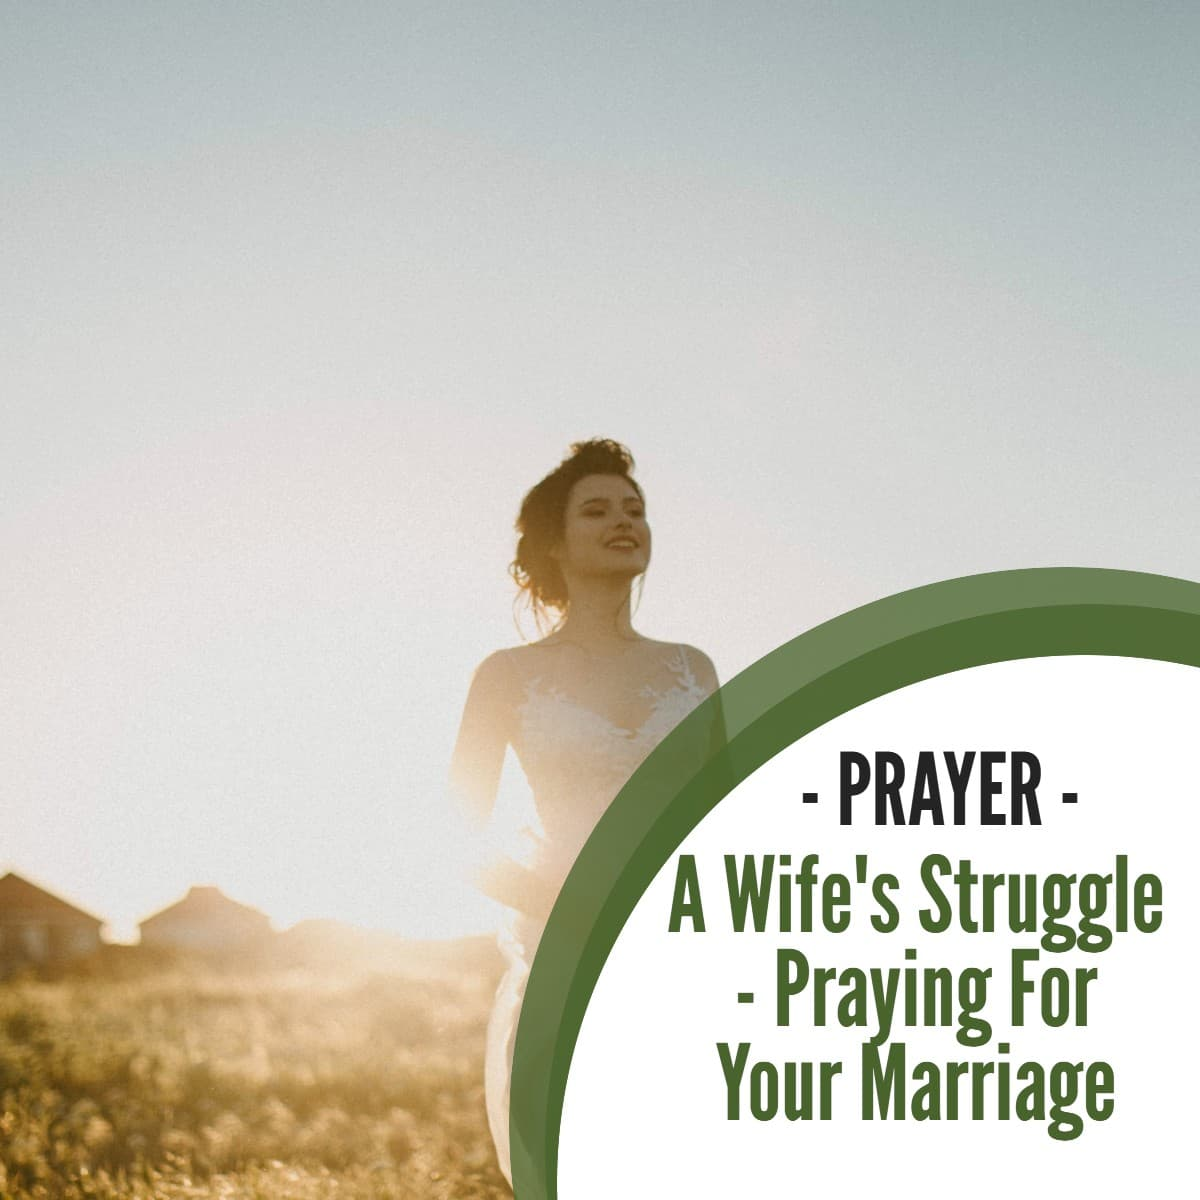 Prayer: A Wife's Struggle - Praying For Your Marriage